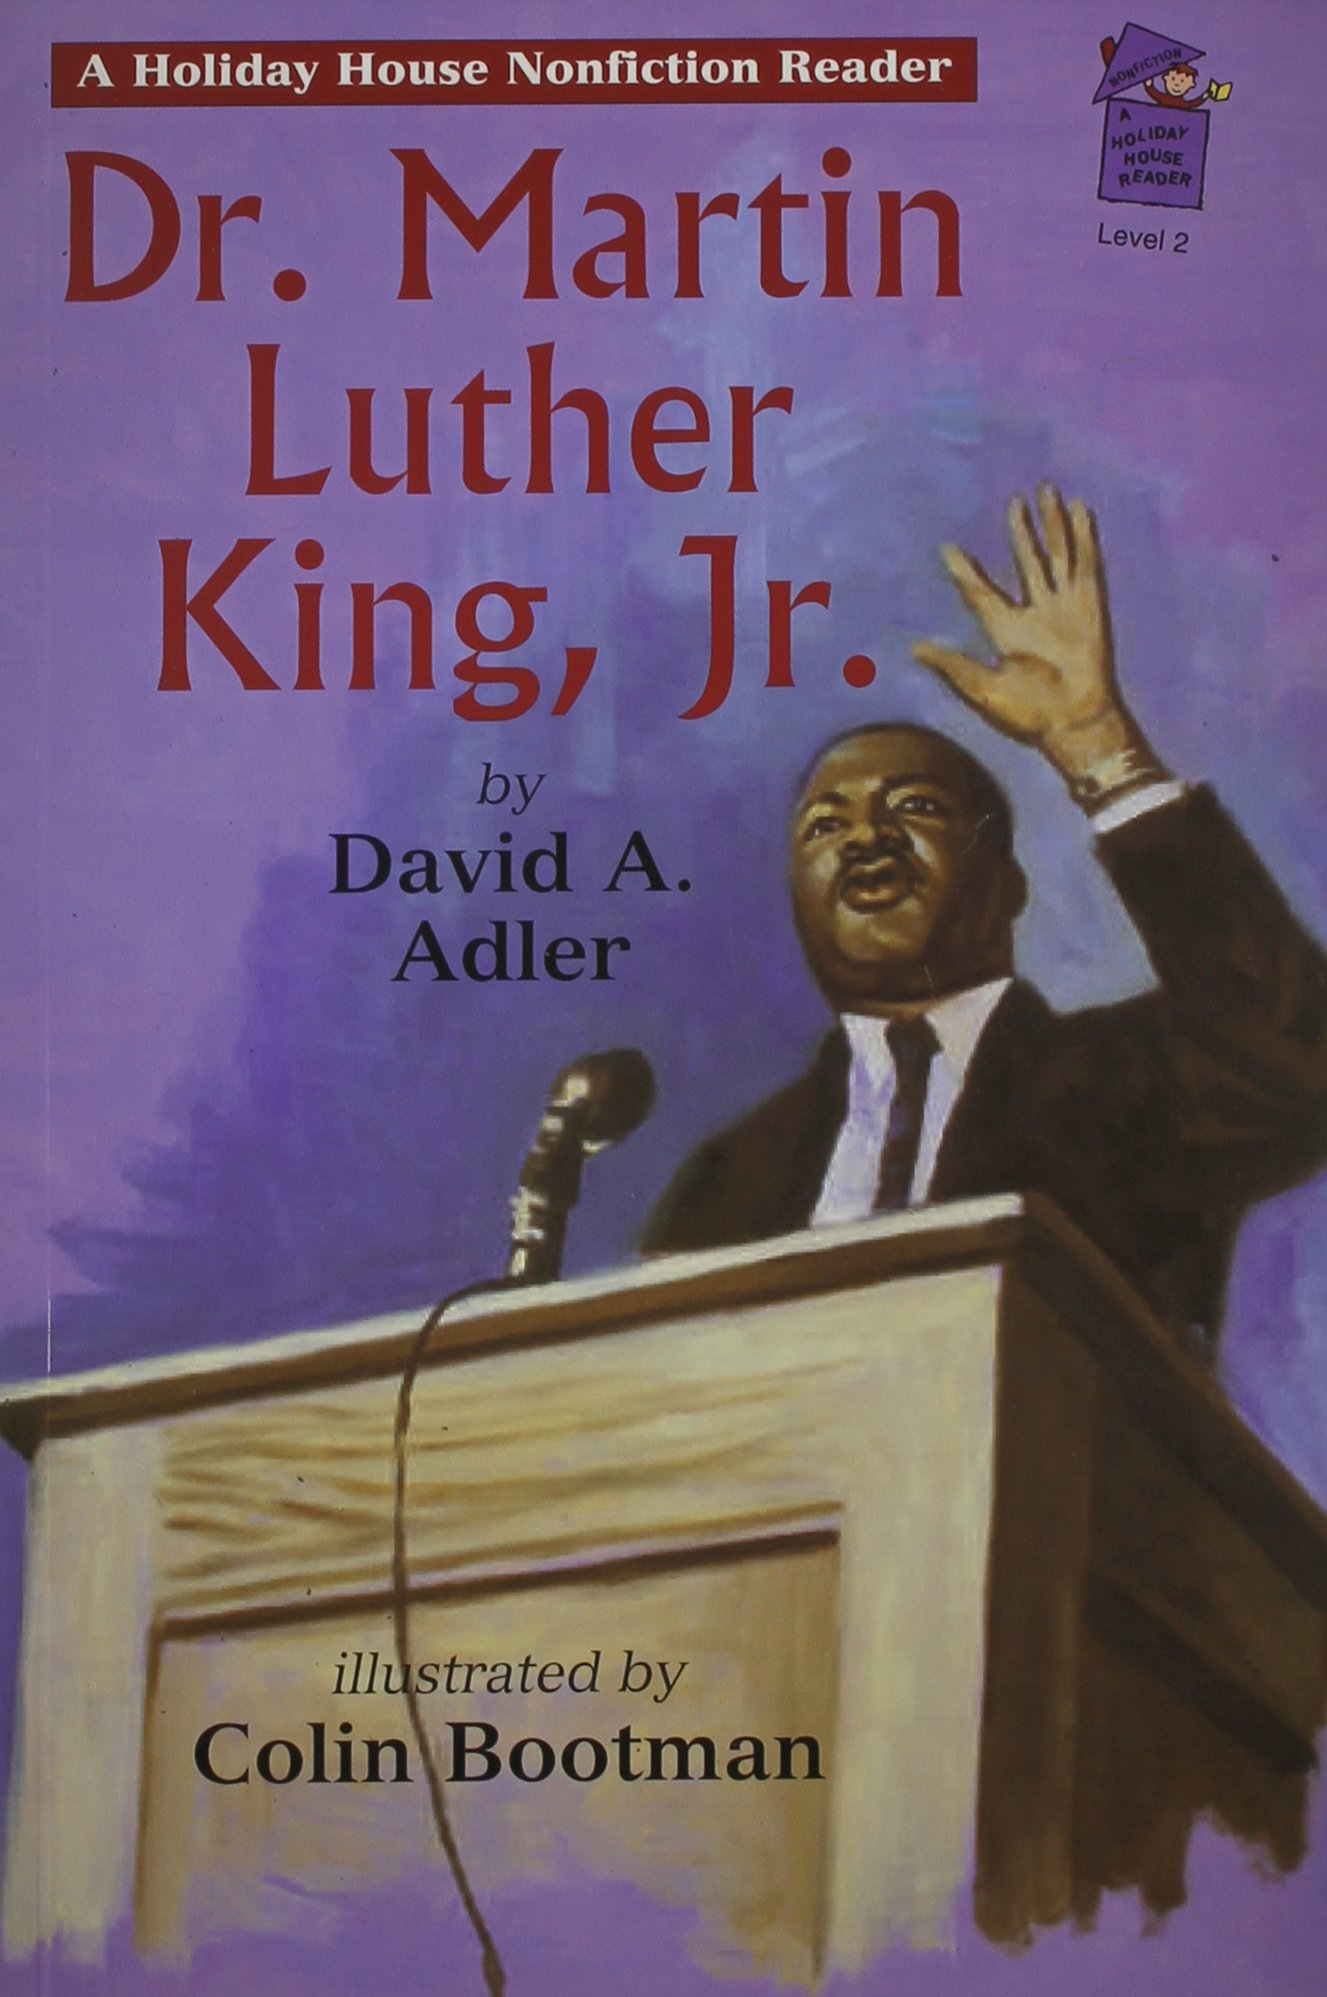 Dr. Martin Luther King, Jr.: A Holiday House Reader Level 2